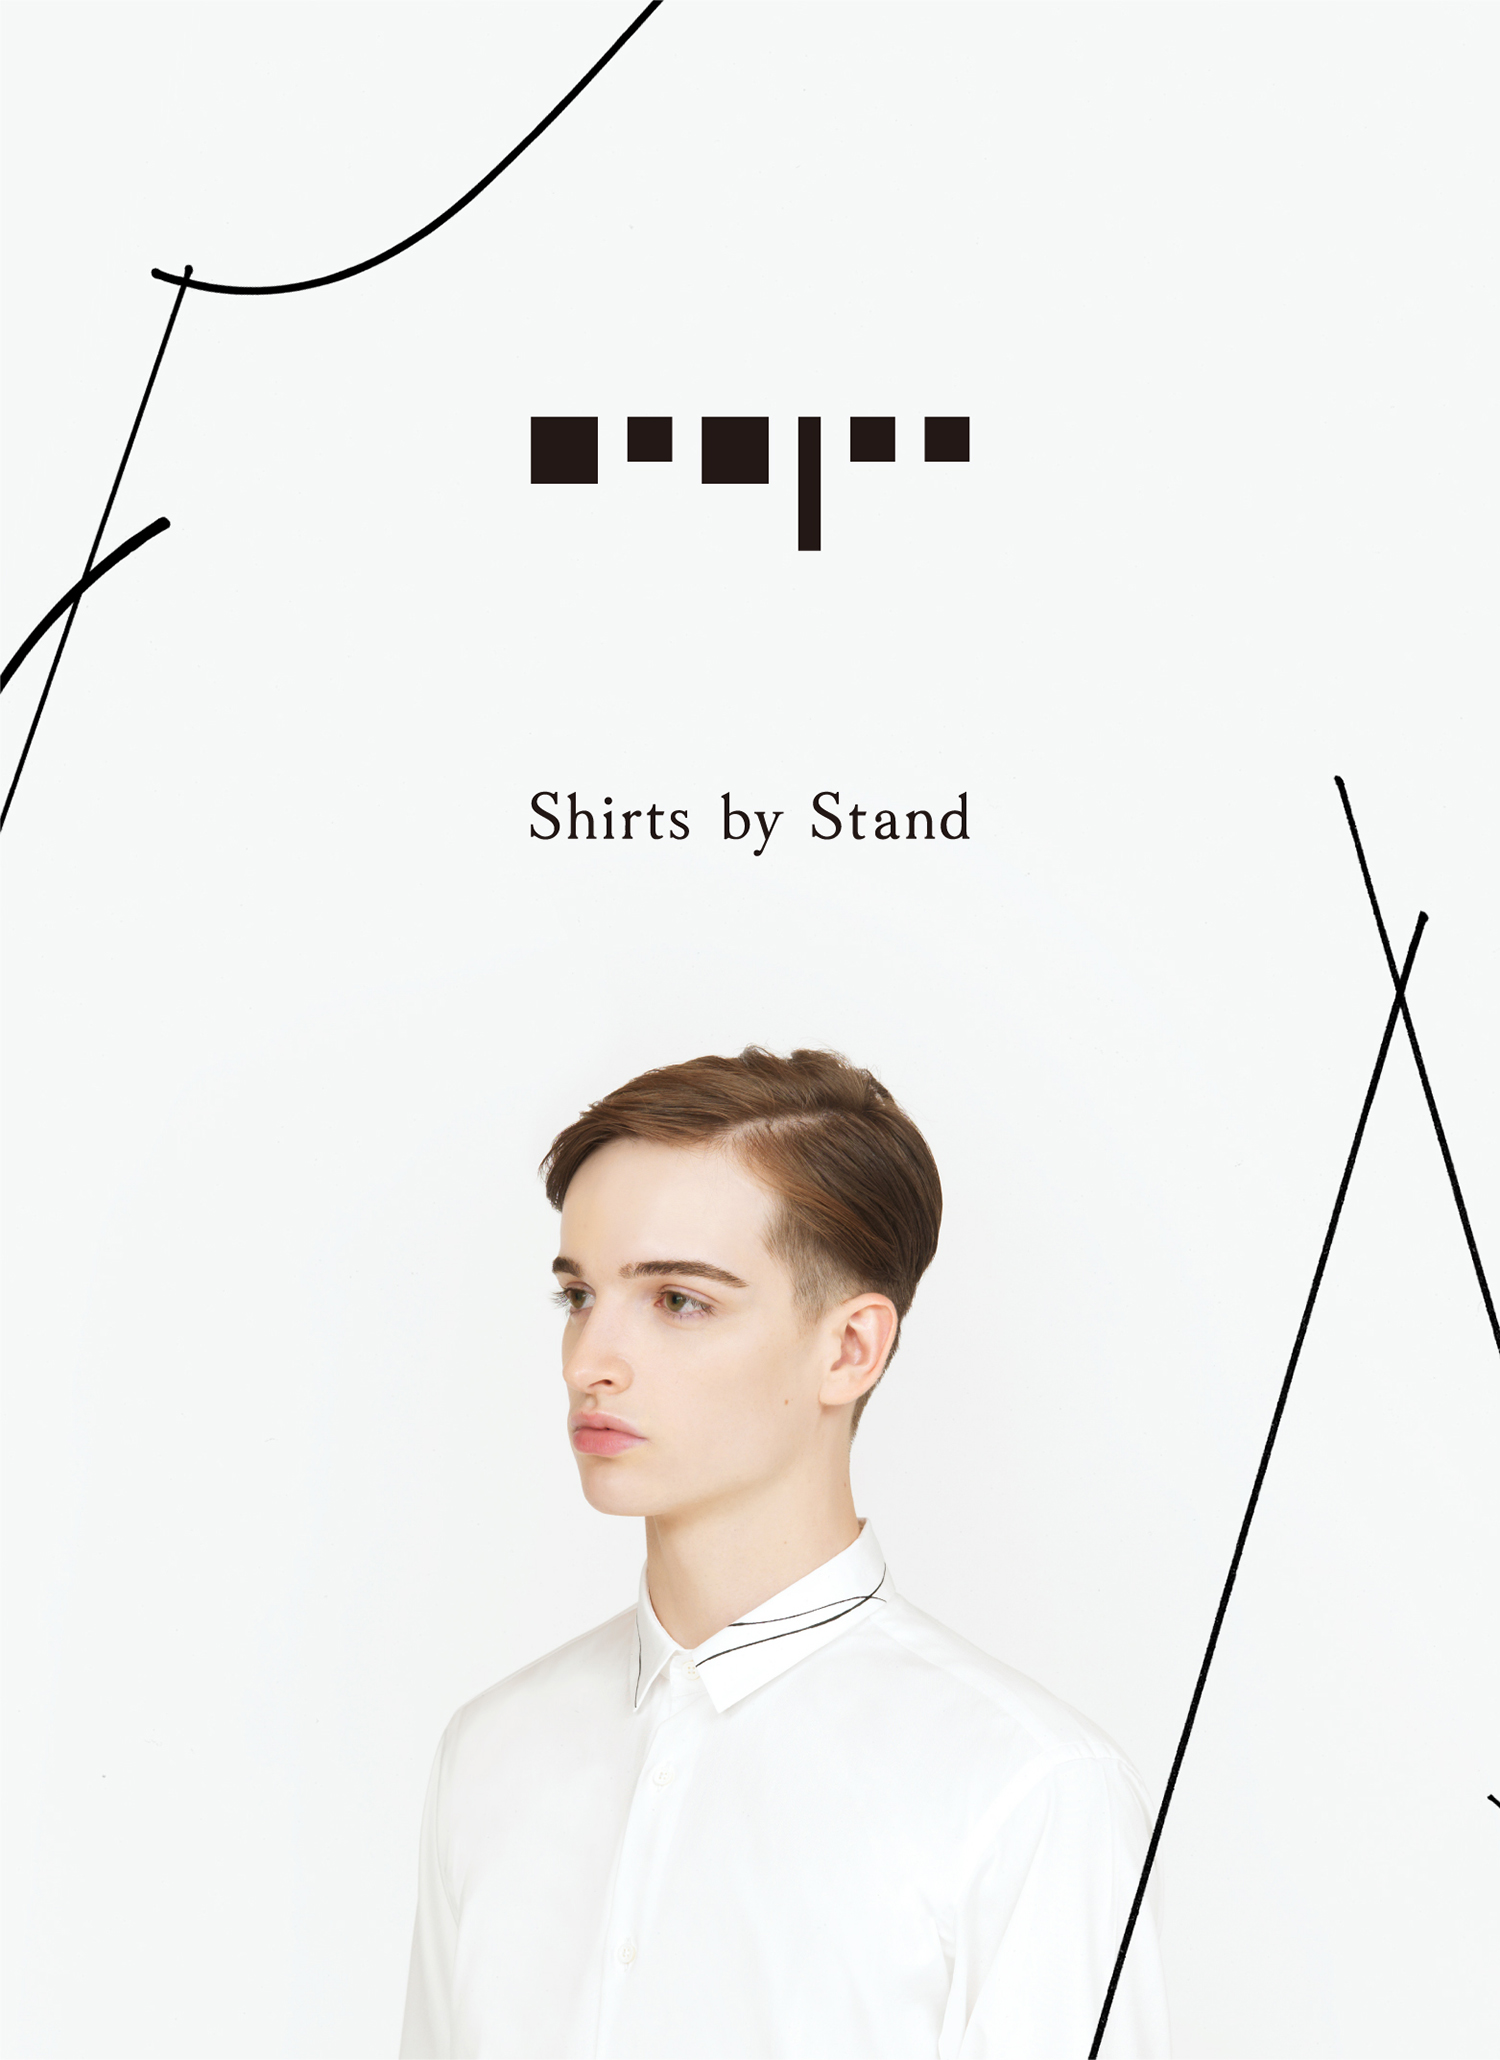 Shirts by Stand